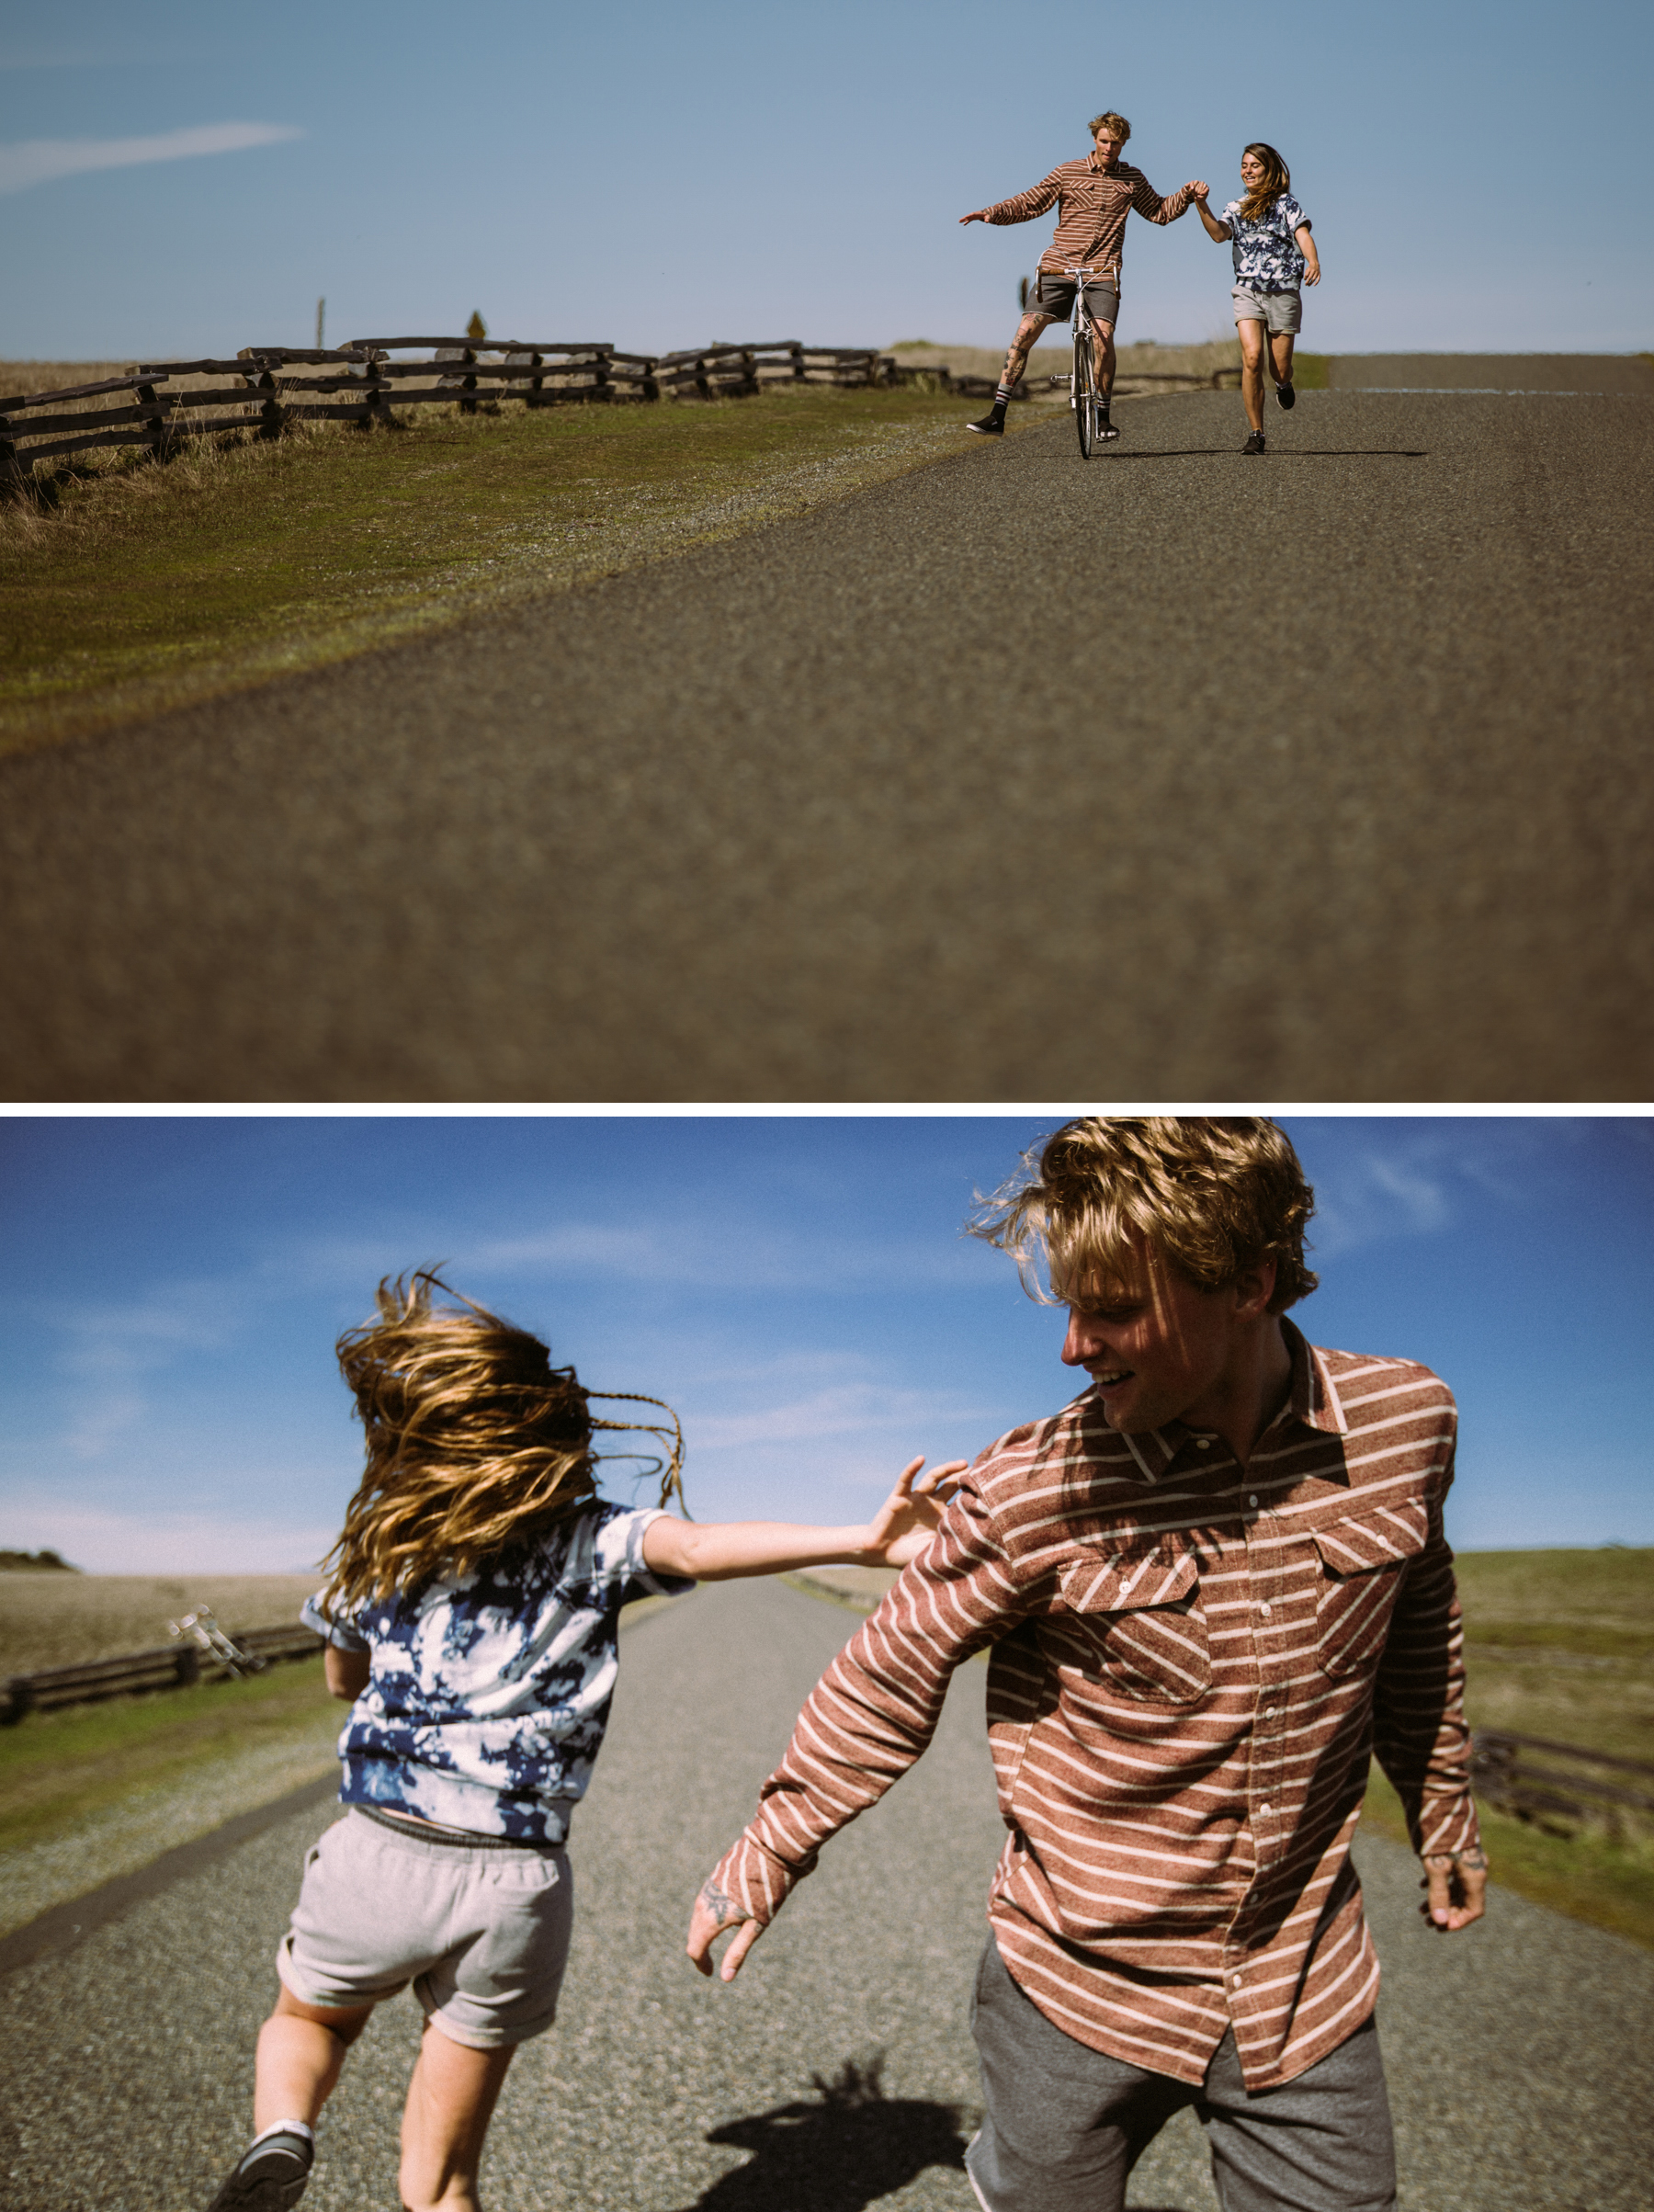 Mikkel and Tavia, Having fun messing around on a  long country road